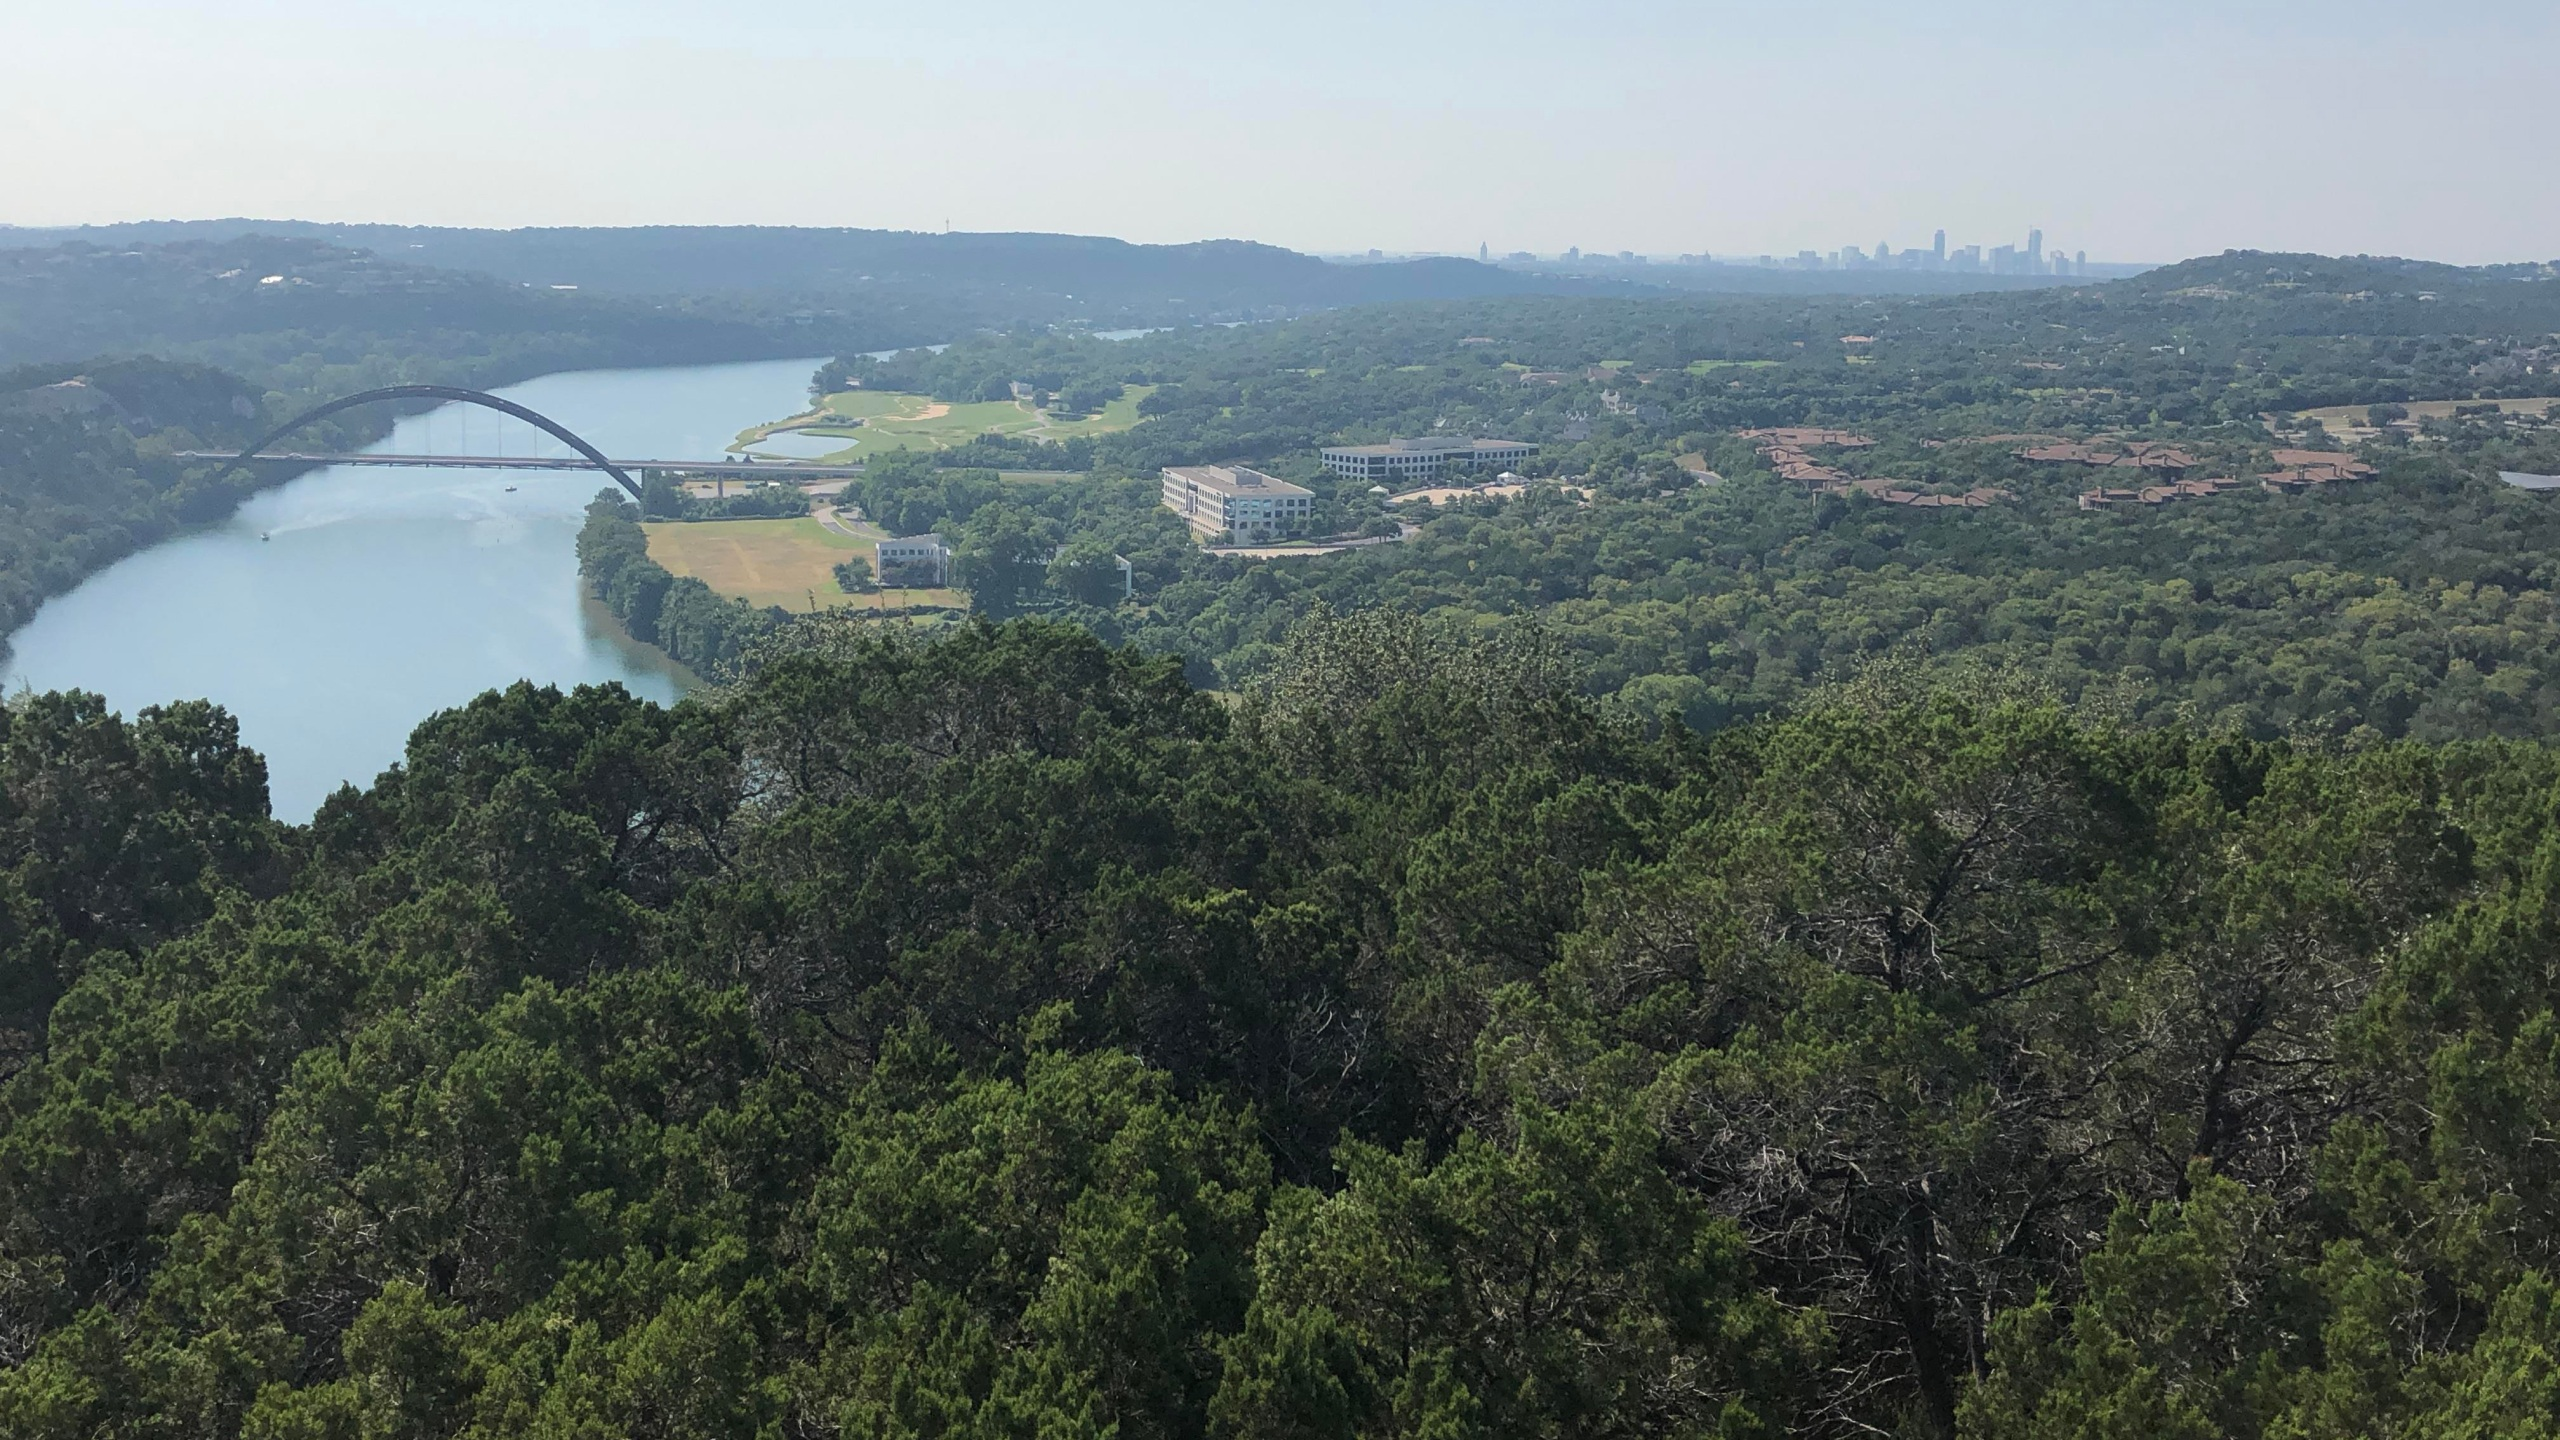 Jonathan Coon envisions luxury condos and a restaurant on the cliffs overlooking Lake Austin, west of the Loop 360 bridge